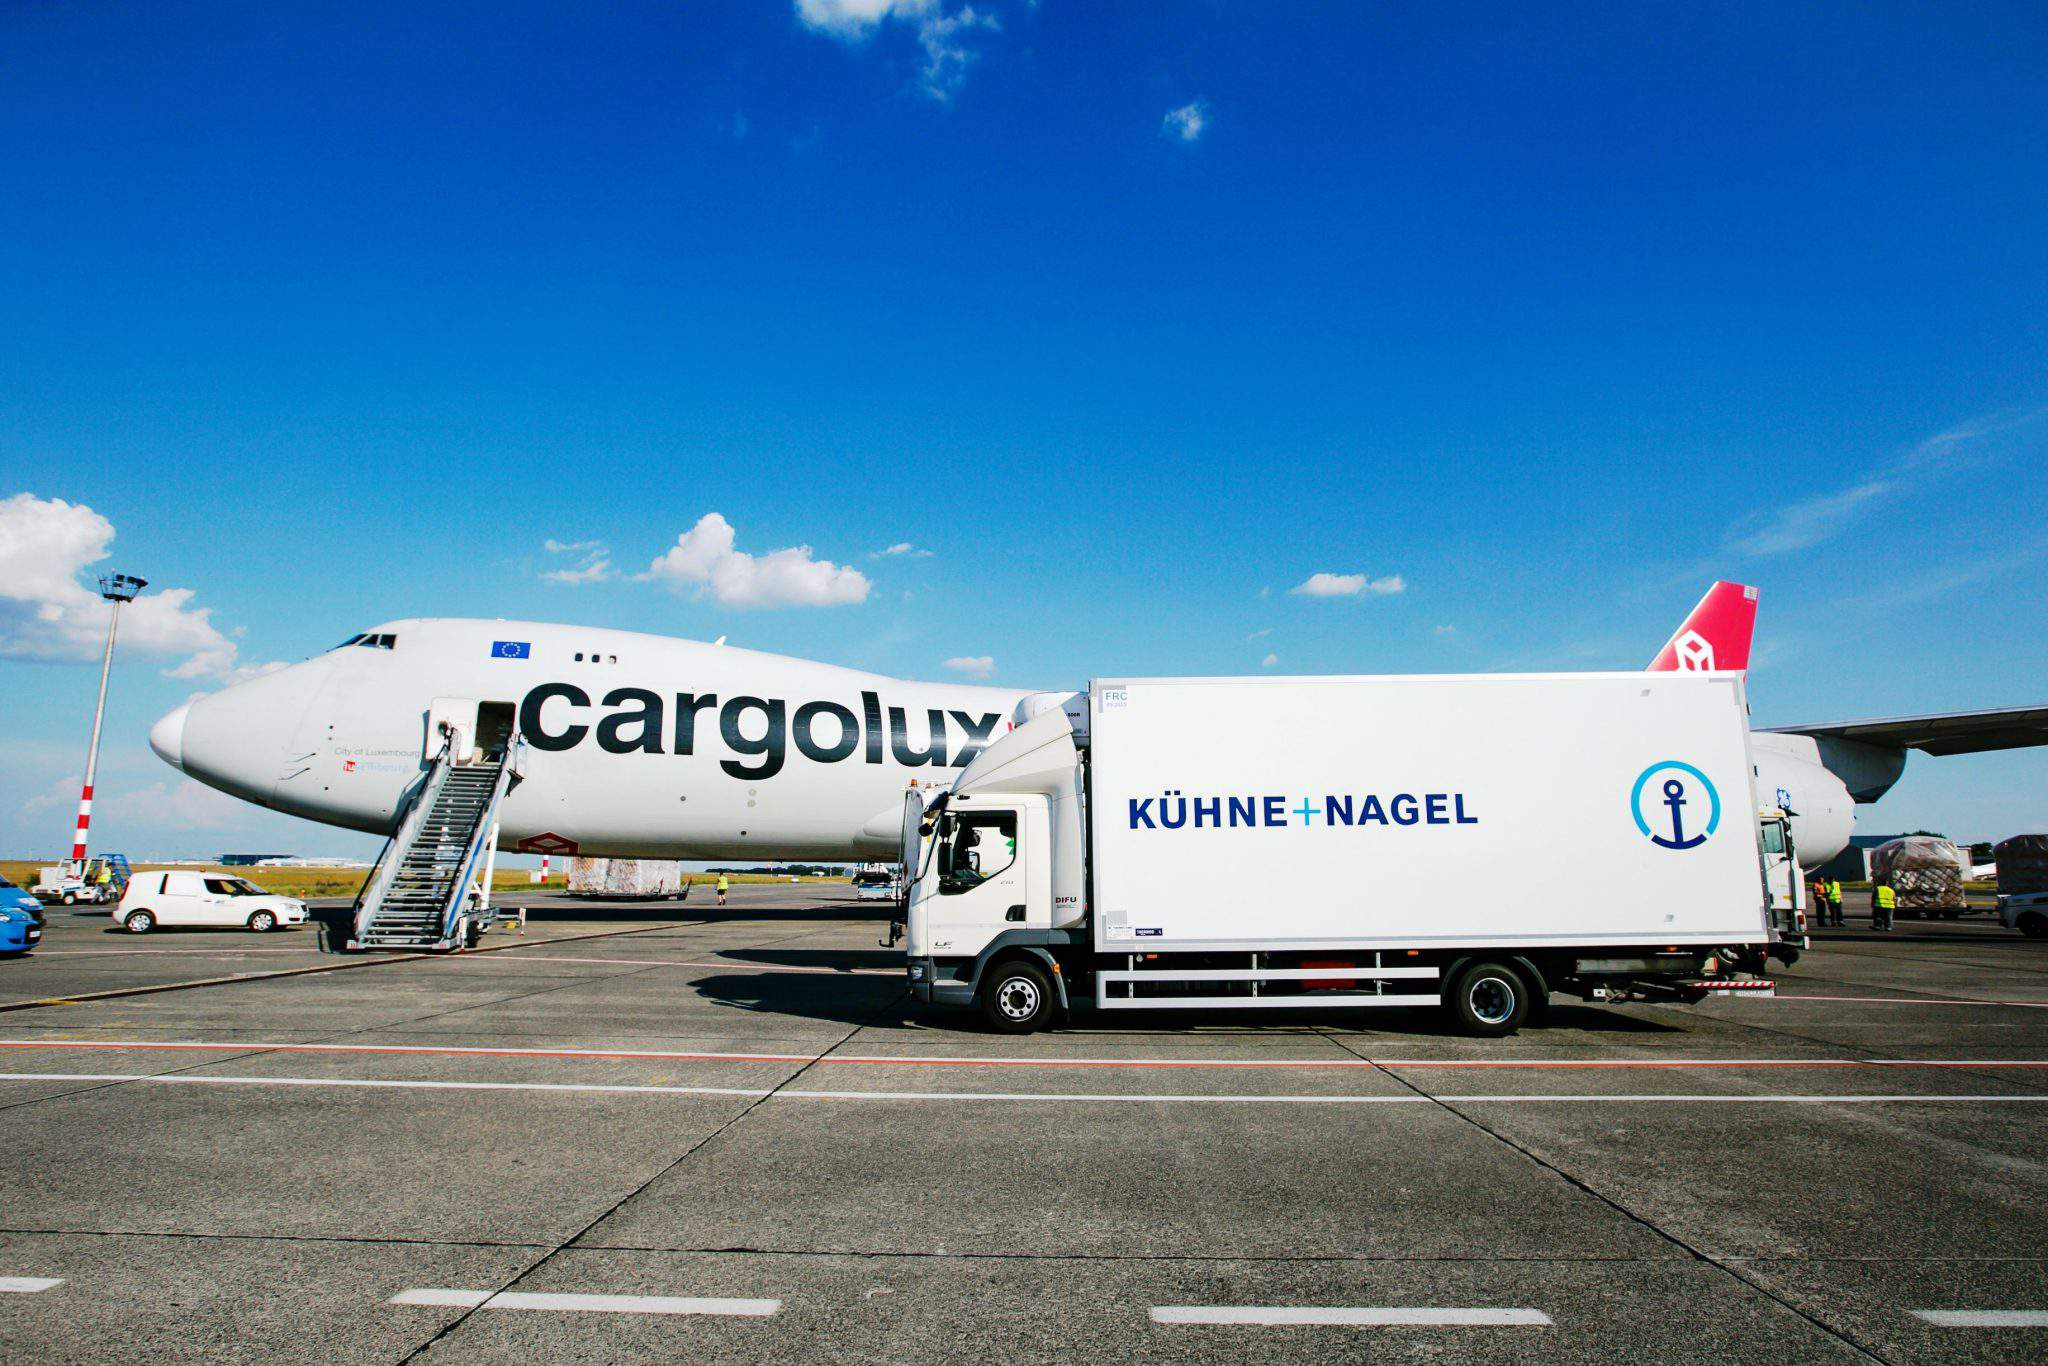 Kuehne + Nagel moves into the airport in Budapest